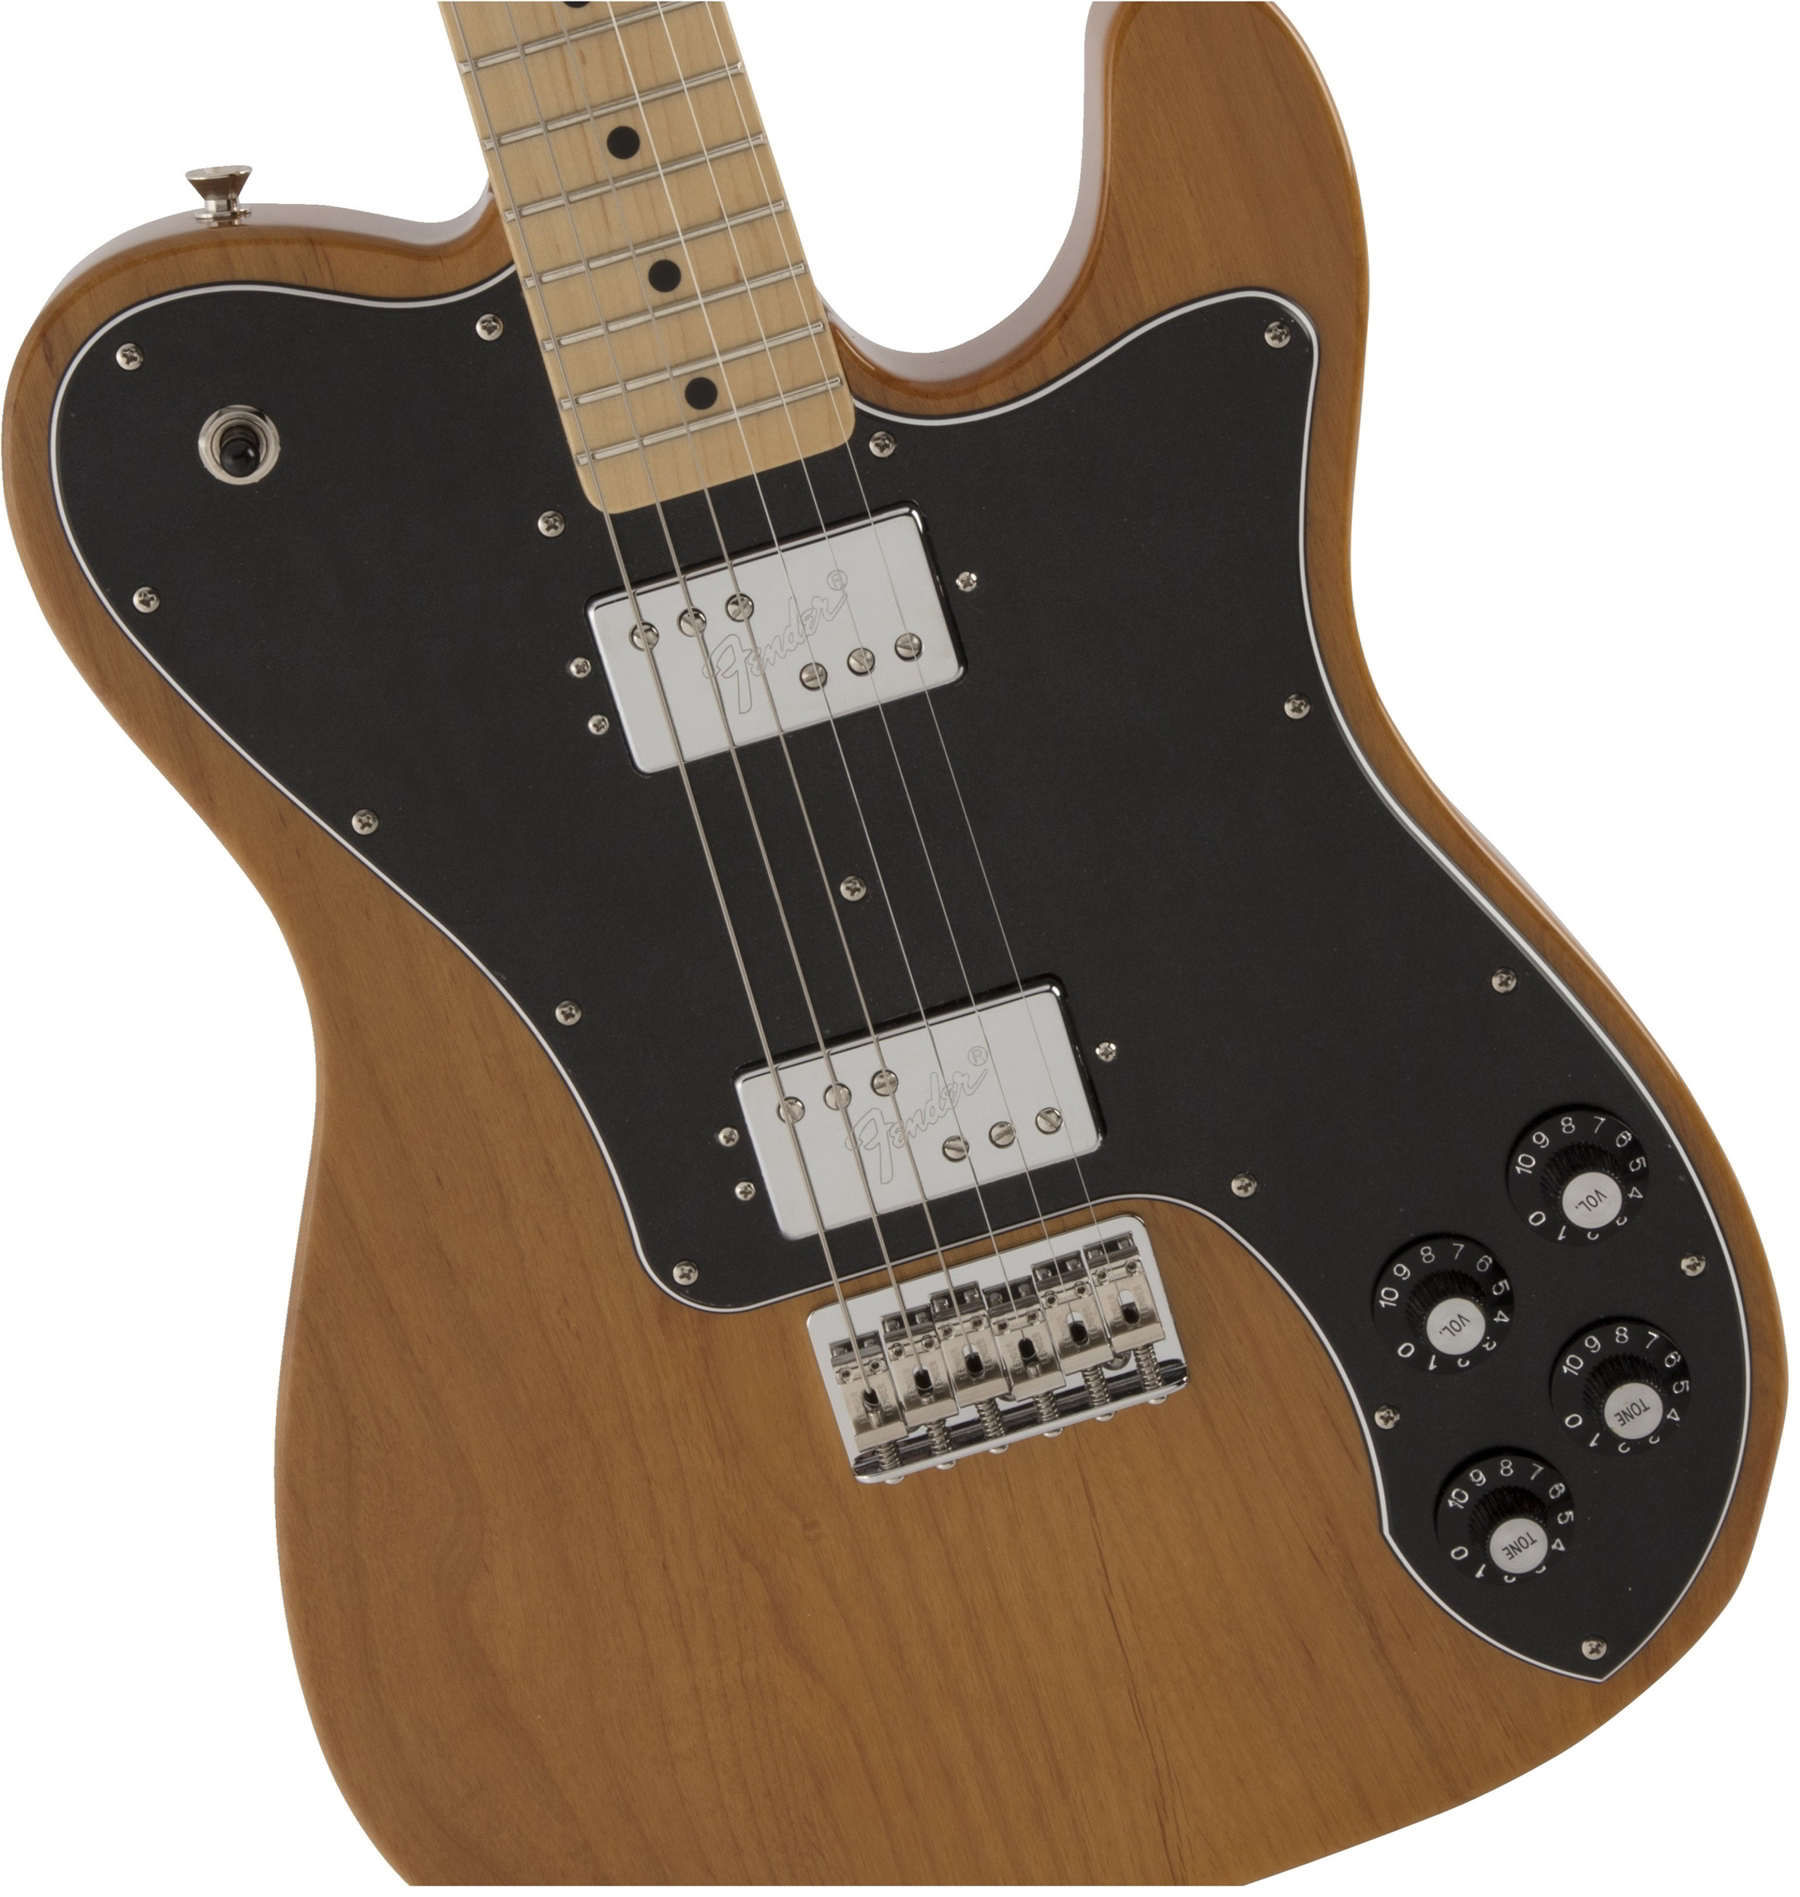 Made in Japan Hybrid Telecaster Deluxe Vintage Natural追加画像